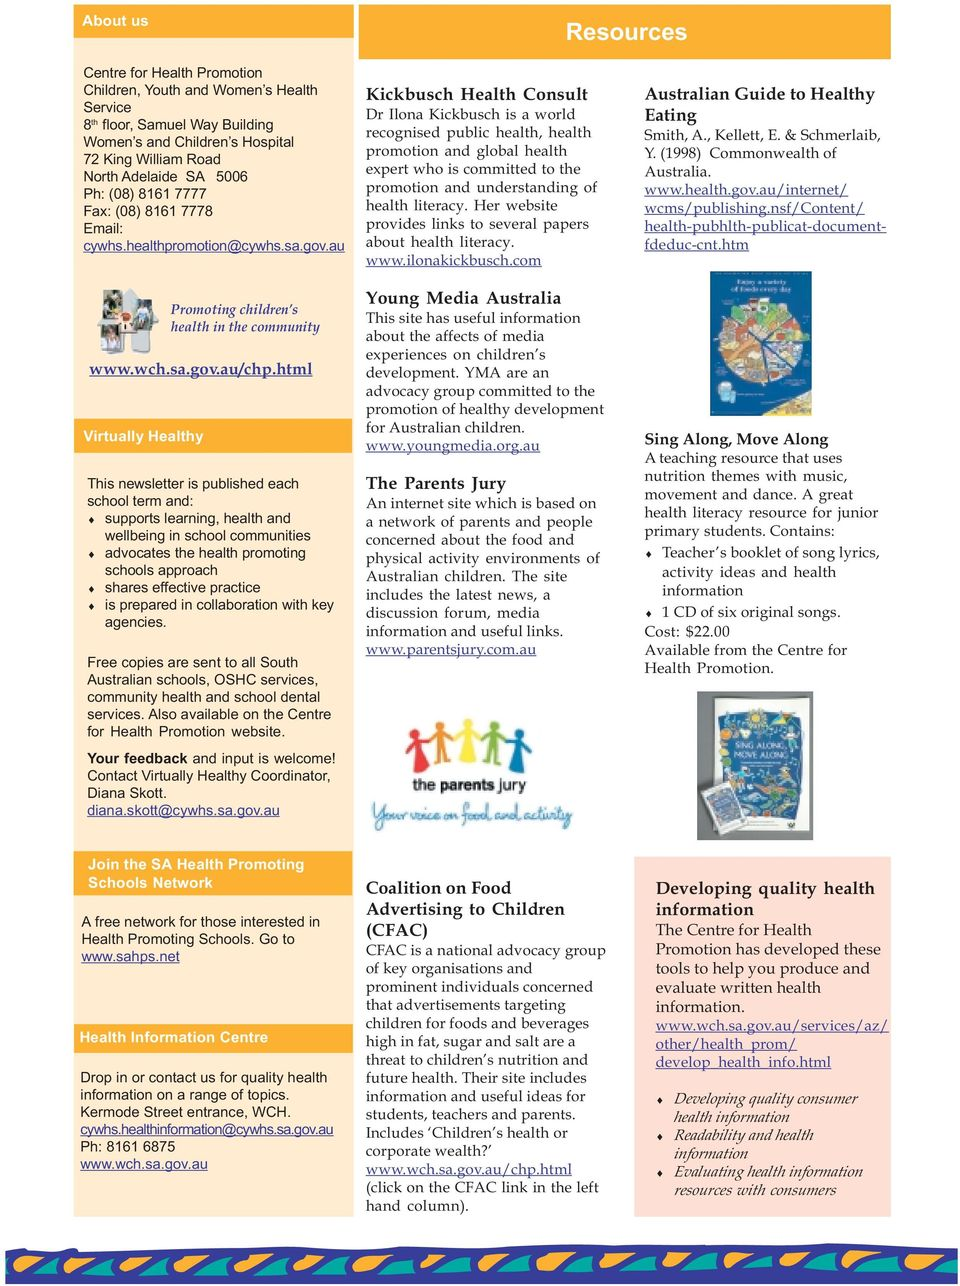 html This newsletter is published each school term and: supports learning, health and wellbeing in school communities advocates the health promoting schools approach shares effective practice is